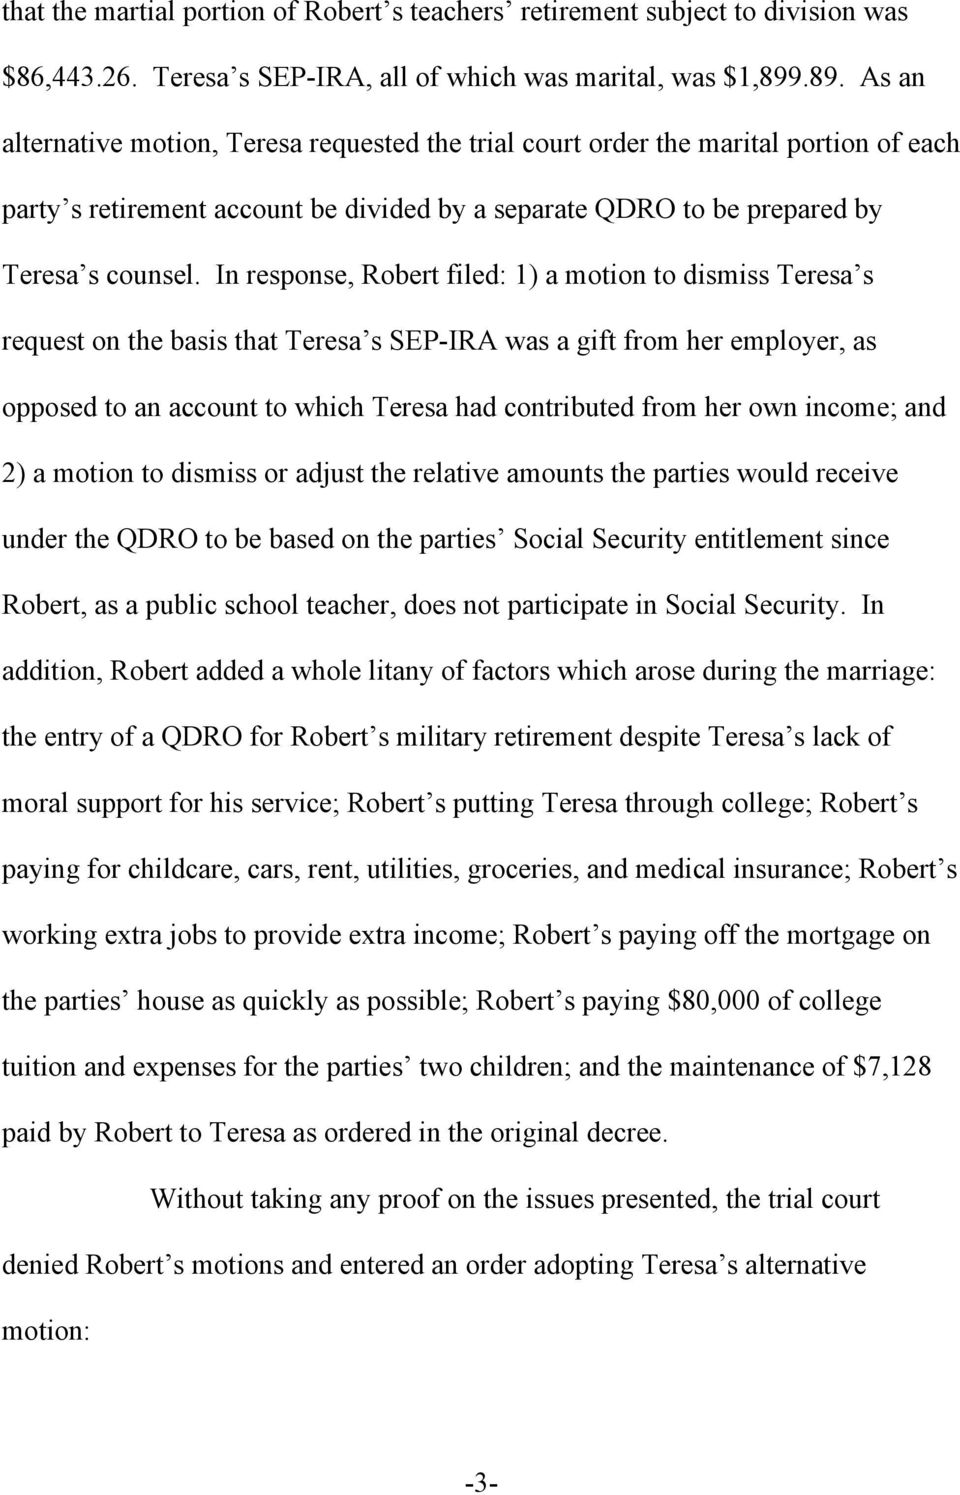 In response, Robert filed: 1) a motion to dismiss Teresa s request on the basis that Teresa s SEP-IRA was a gift from her employer, as opposed to an account to which Teresa had contributed from her